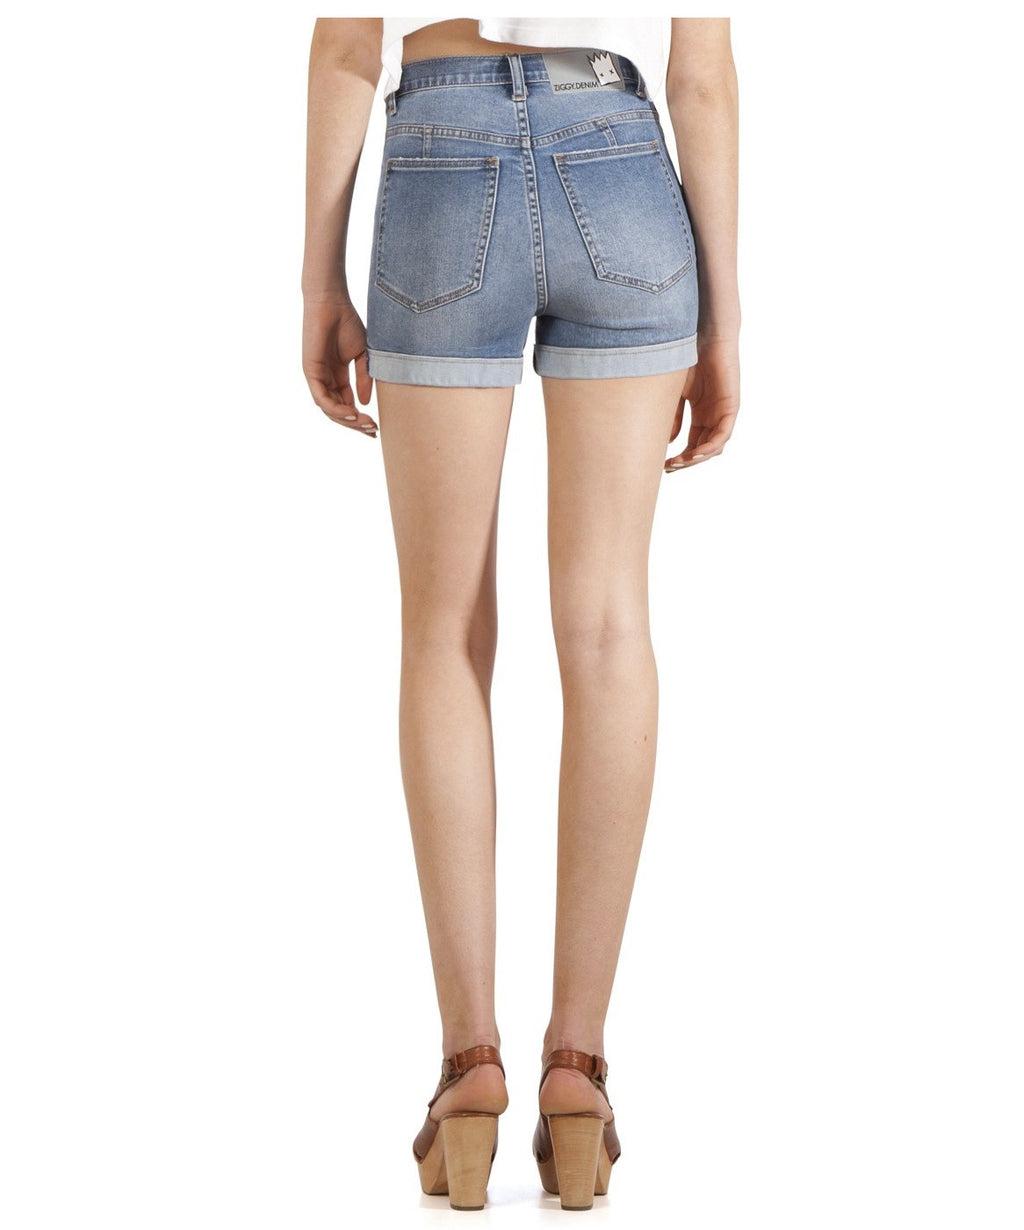 ZIGGY Denim - Hill Billy Shorts - I Just Bluied Myself